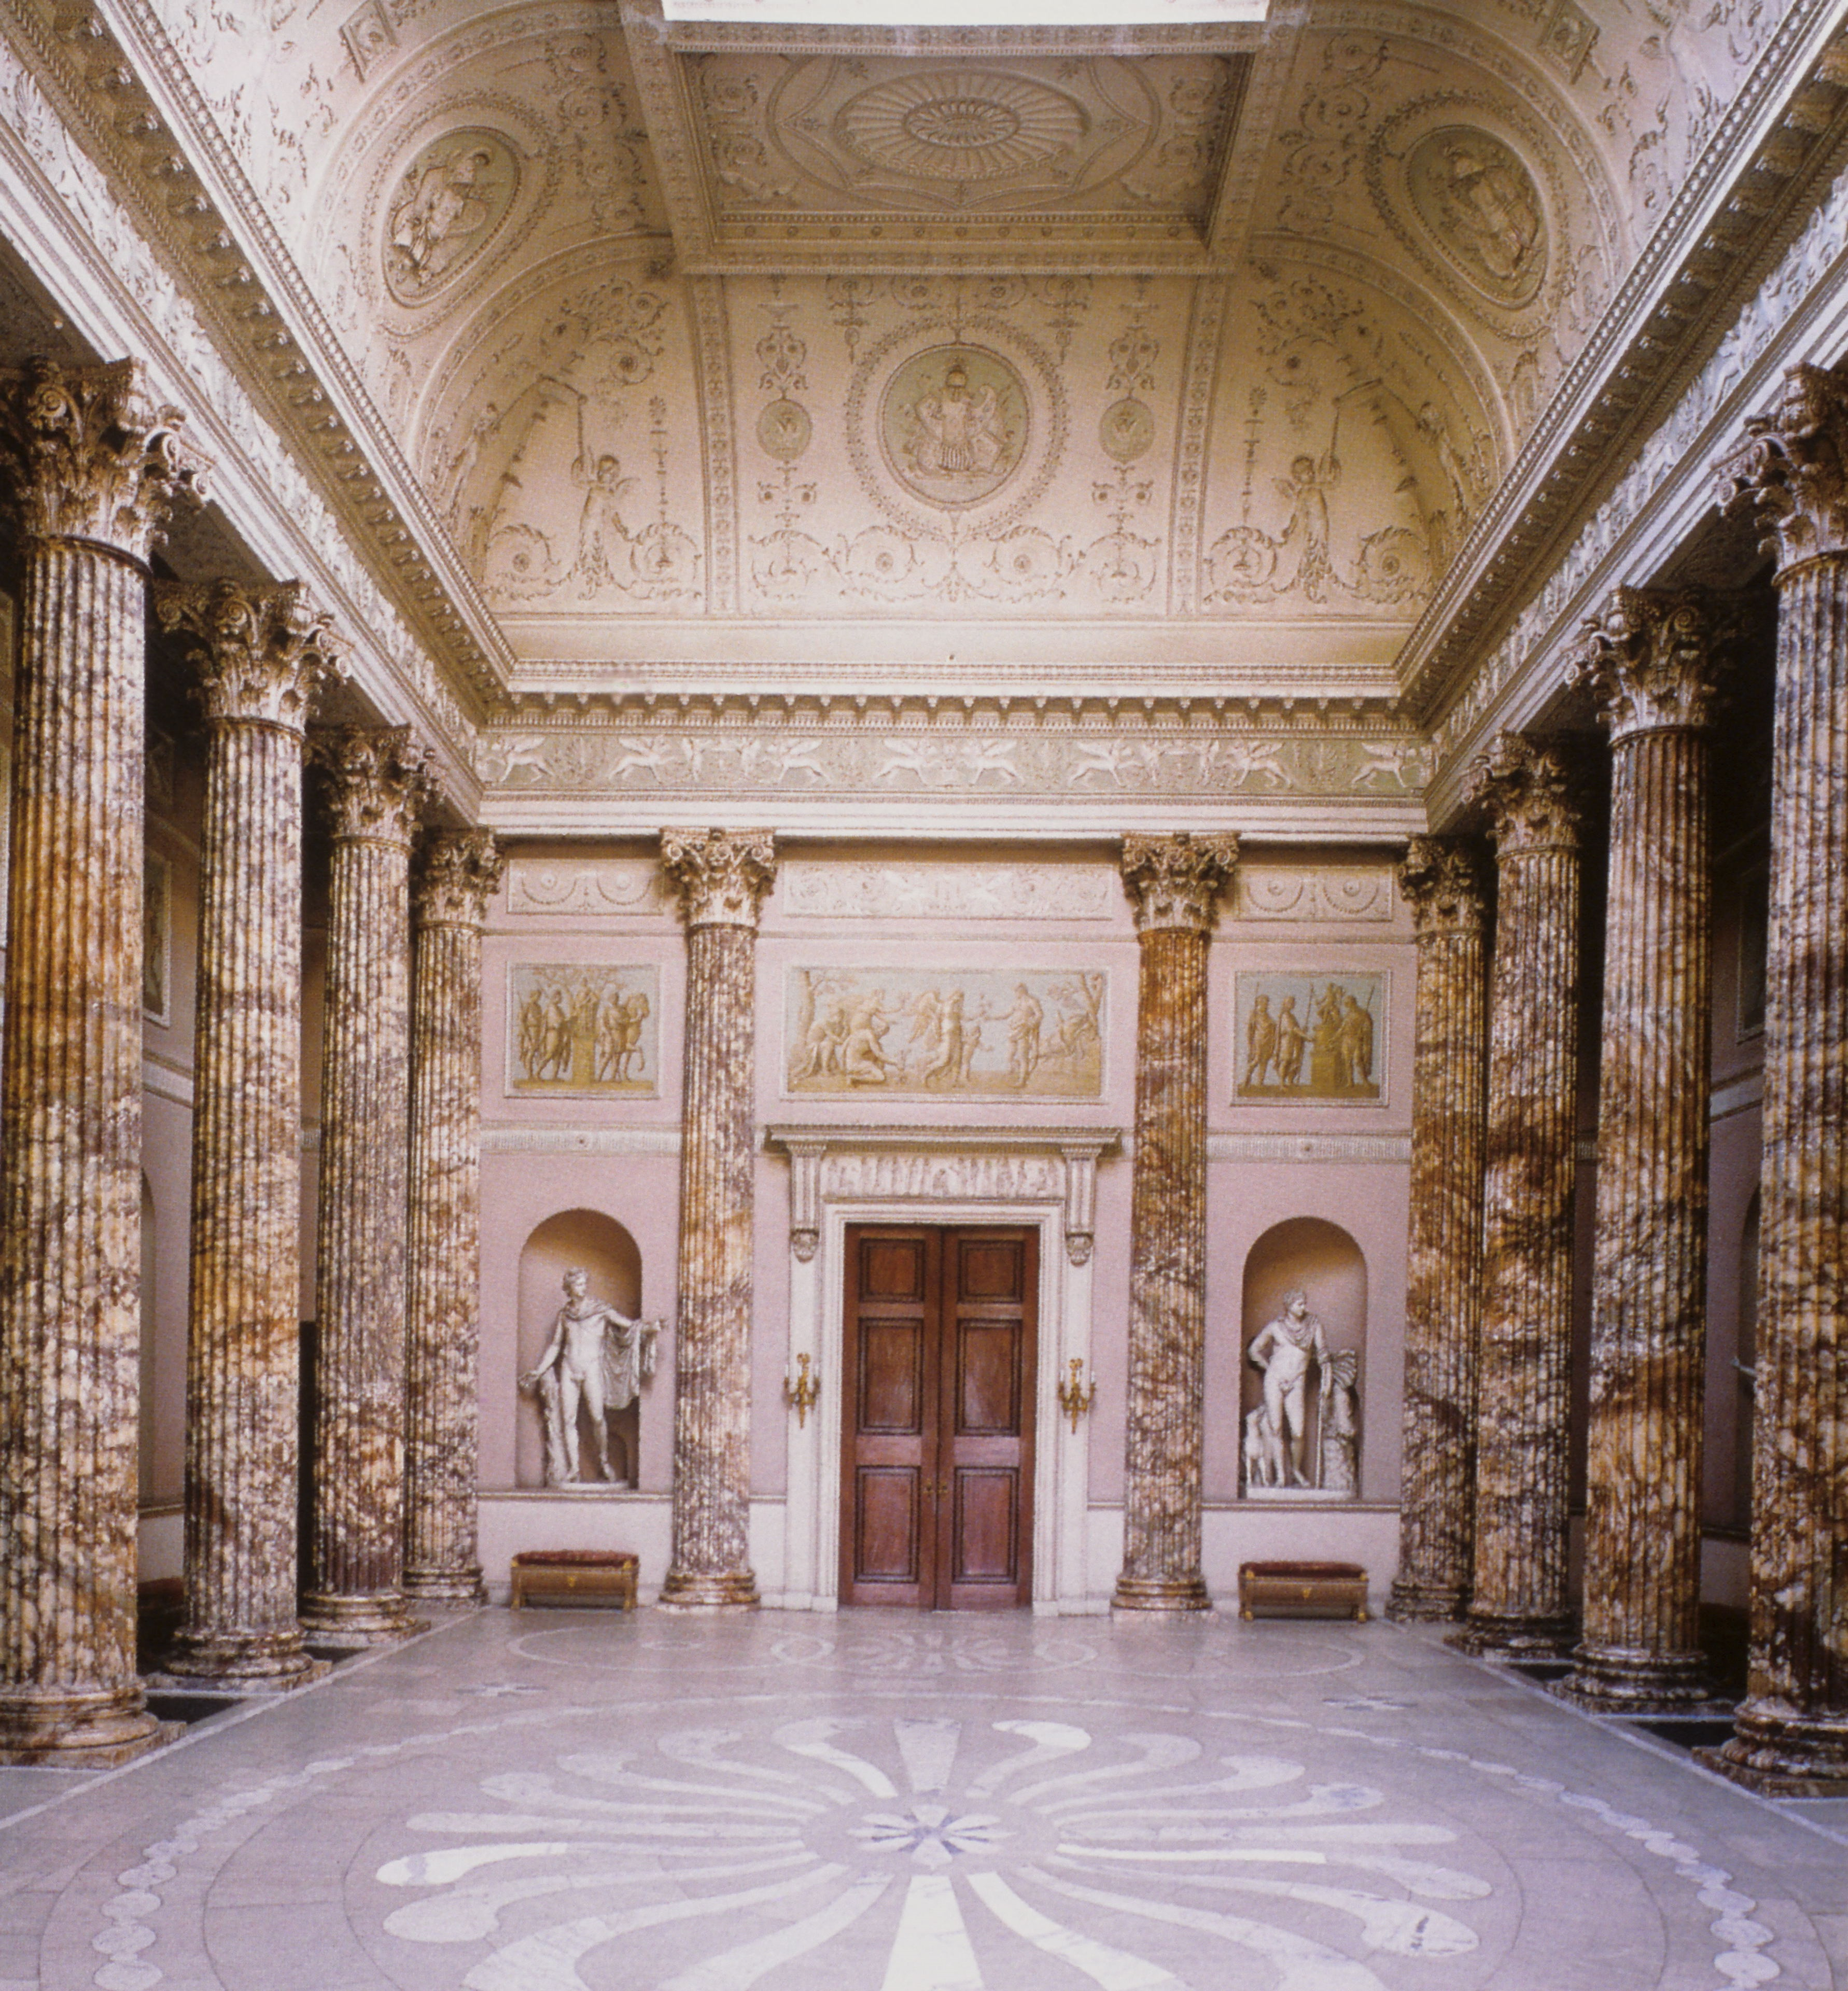 Inspiring Slides: Kedleston Hall and its neo-classical architecture ...